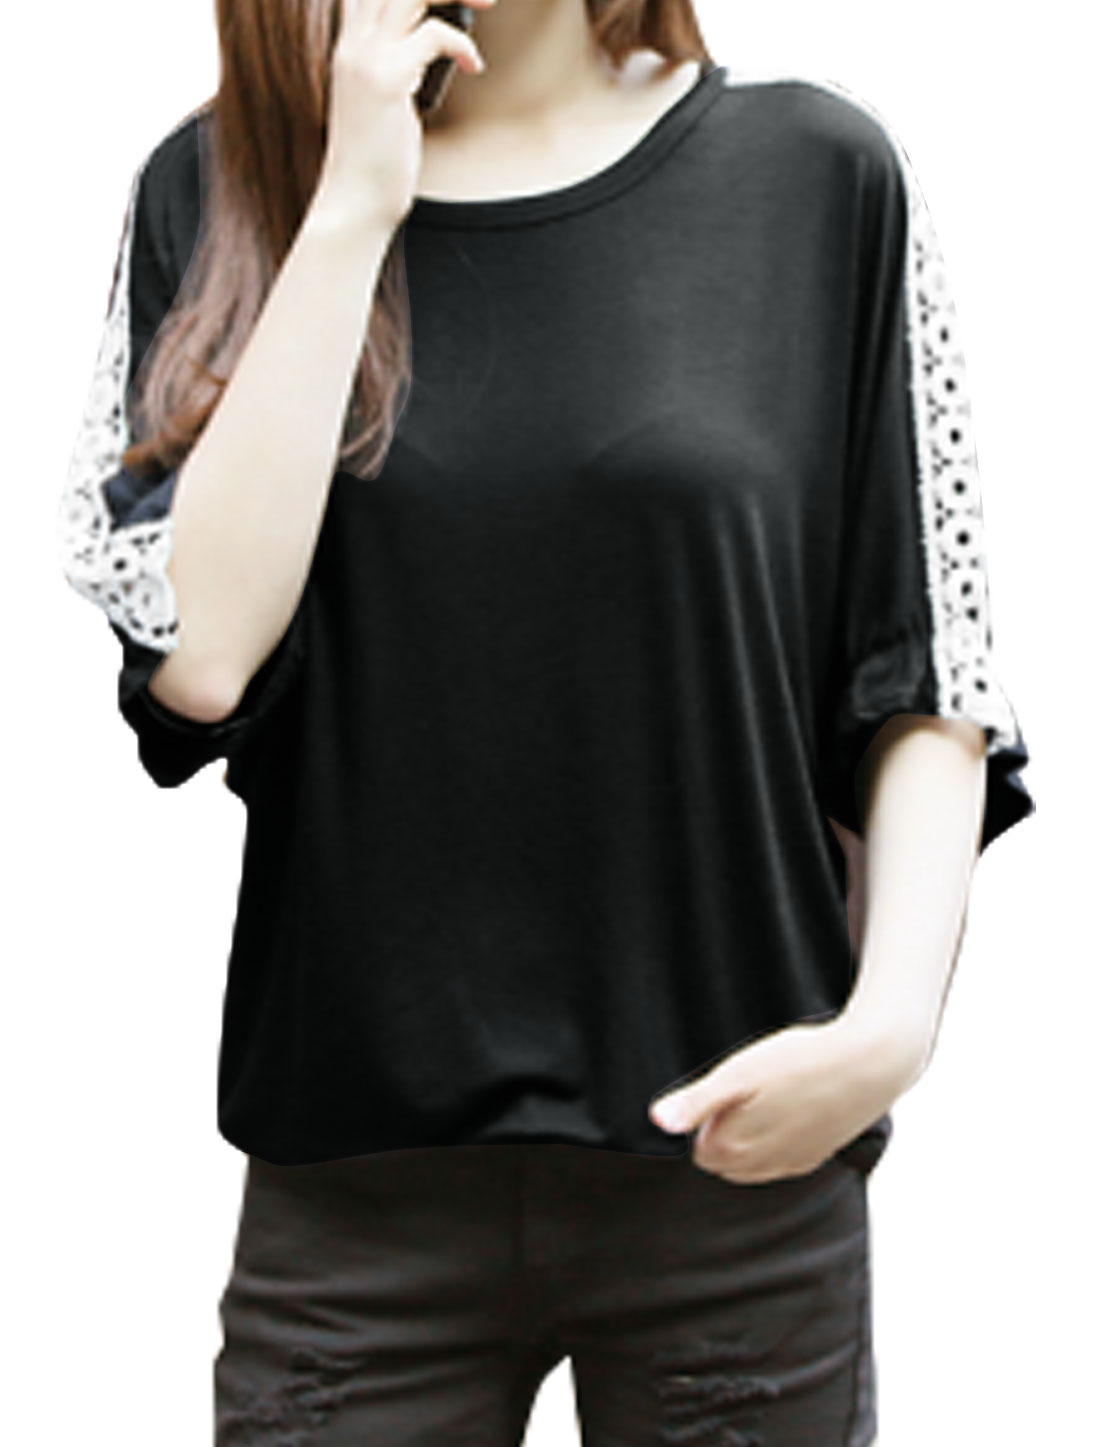 Woman Round Neck Hollow Out Design Loose Batwing T-Shirt Black XS